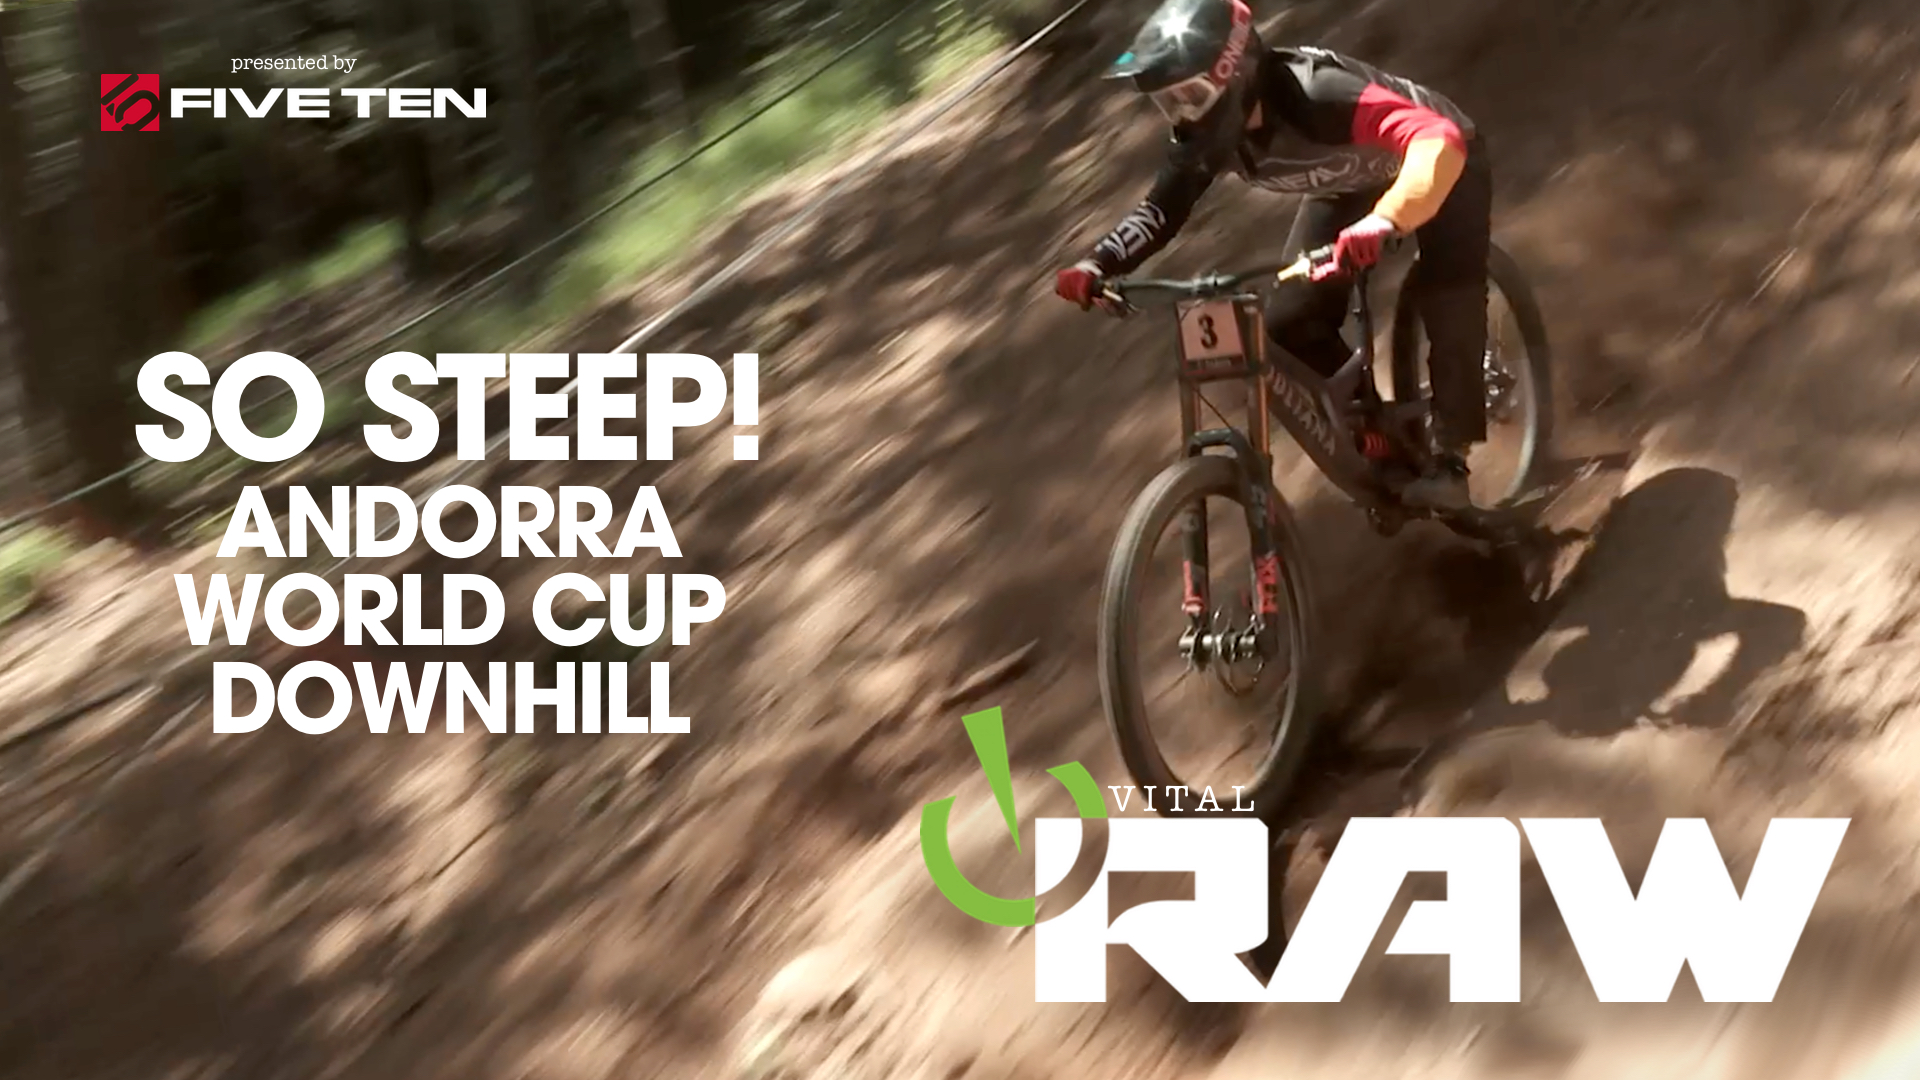 Vital RAW Andorra World Cup Downhill Day 2